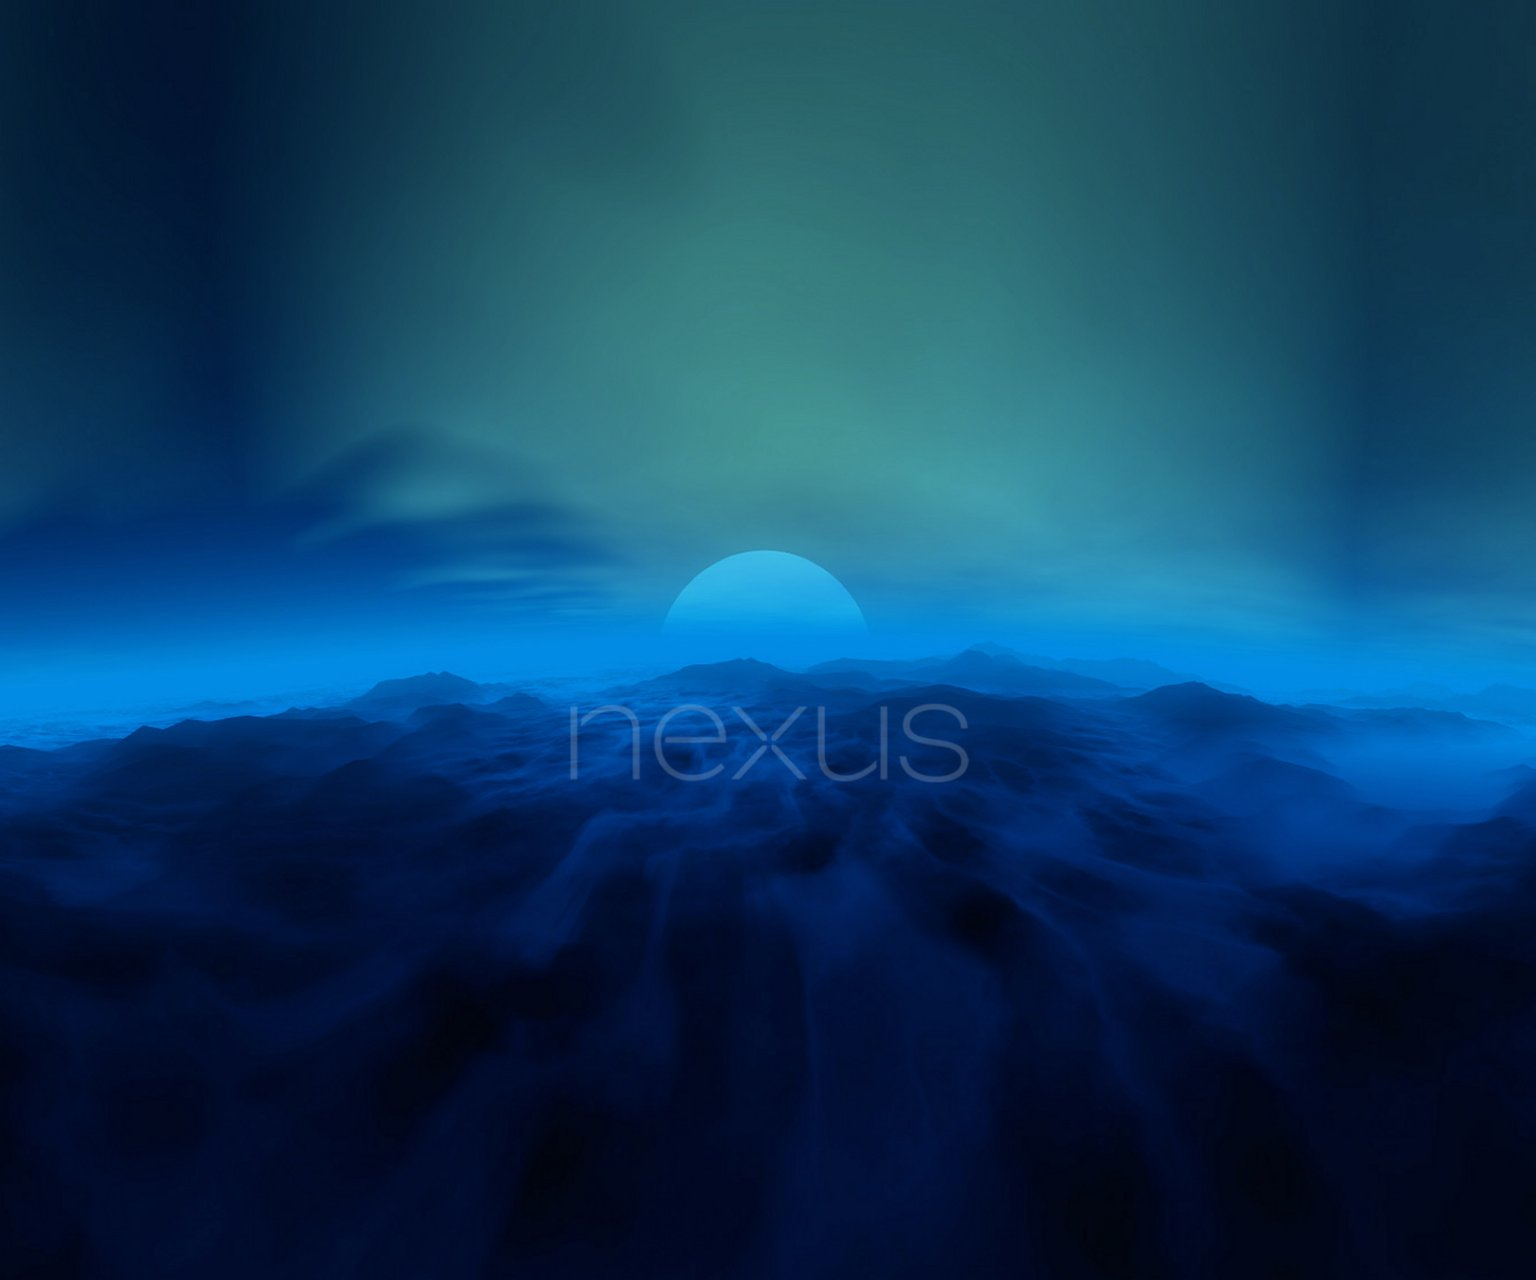 Nexus Backgrounds  Wallpaper  1536x1280